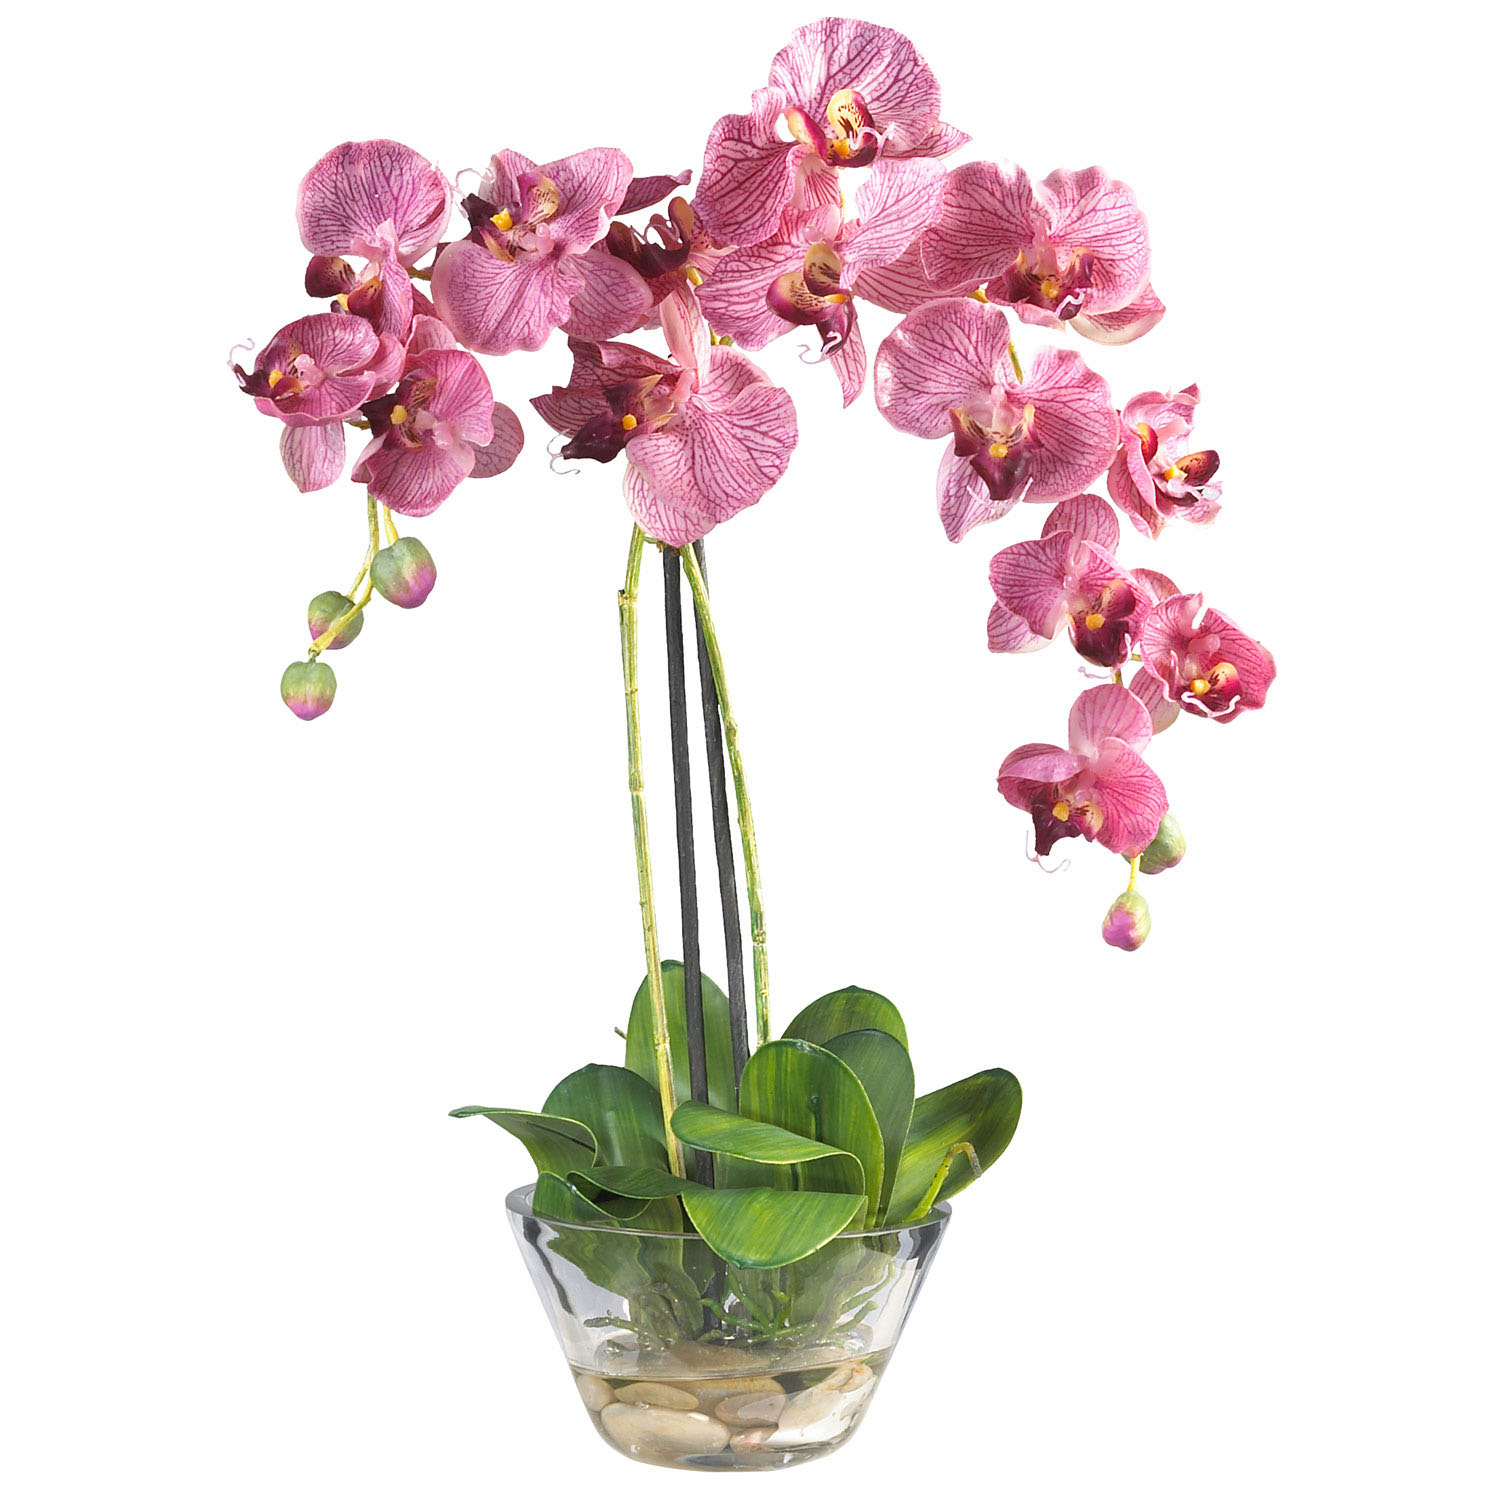 phalaenopsis orchid with glass vase 4643. Black Bedroom Furniture Sets. Home Design Ideas